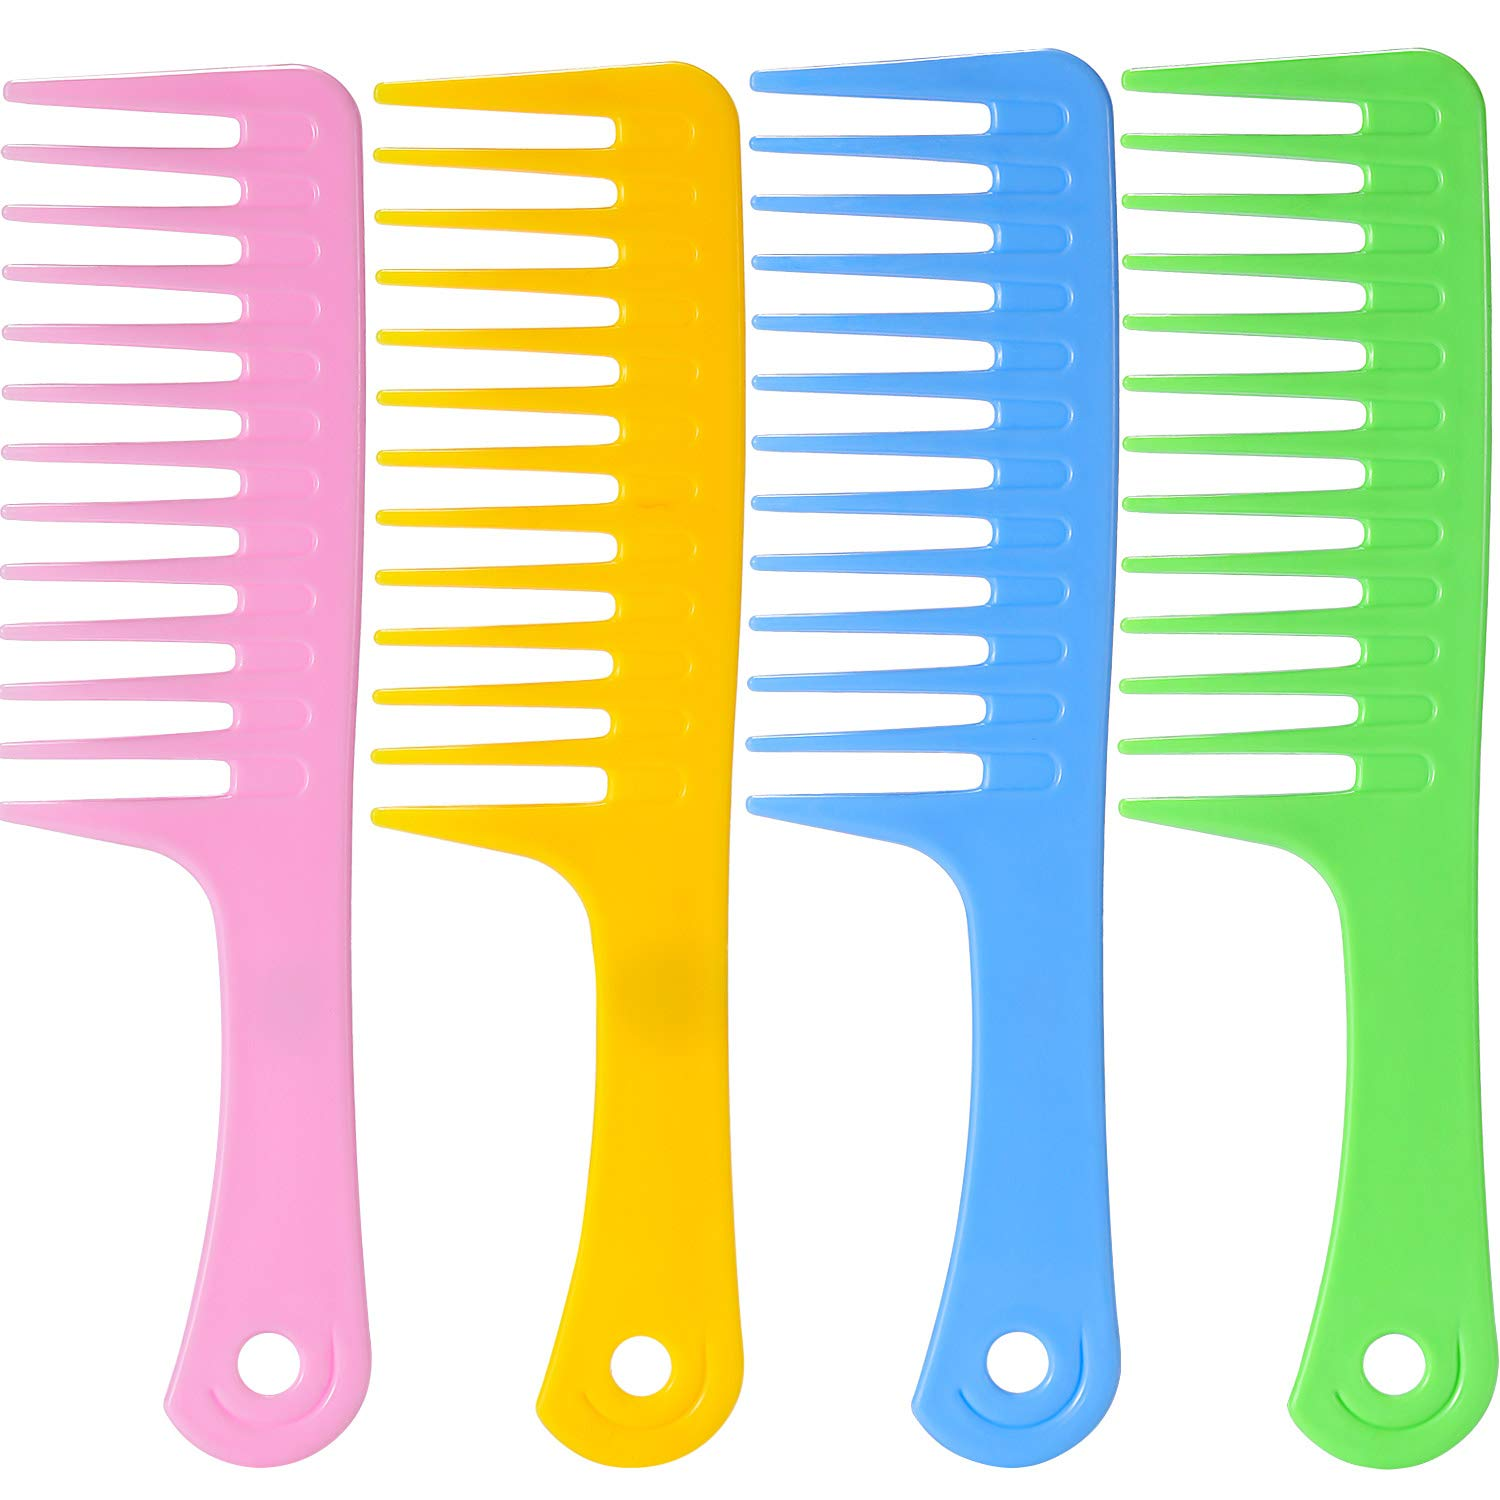 4 Pieces 9 1/2 Inches Anti-static Large Tooth Detangle Comb, Wide Tooth Hair Comb Salon Shampoo Comb for Thick Hair Long Hair and Curly Hair TecUnite TecUnite-Hair Comb-01